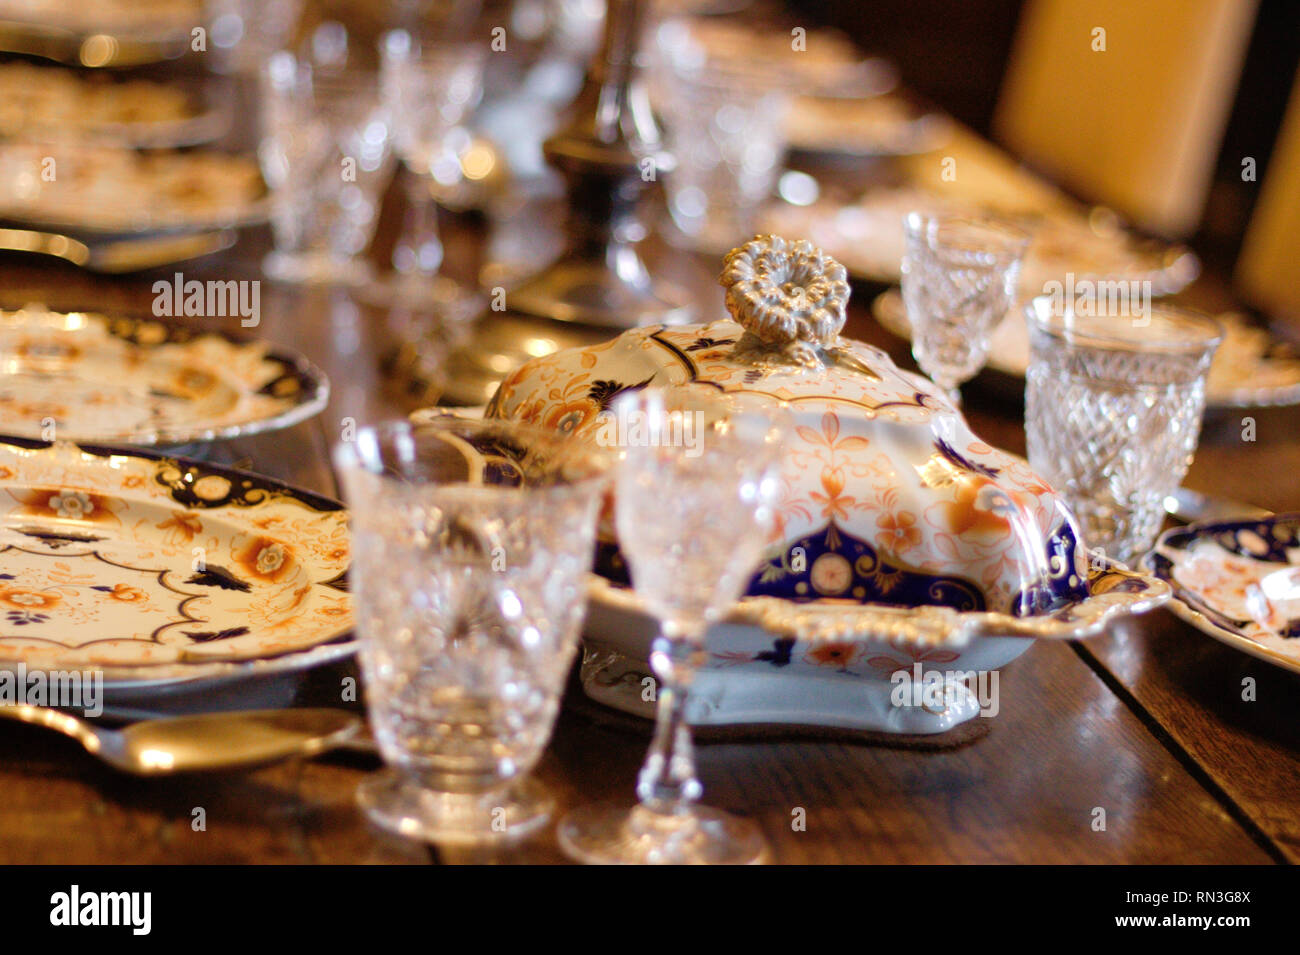 Antique glasses and porcelain on a laid table at Scotney castle, Kent, UK. - Stock Image